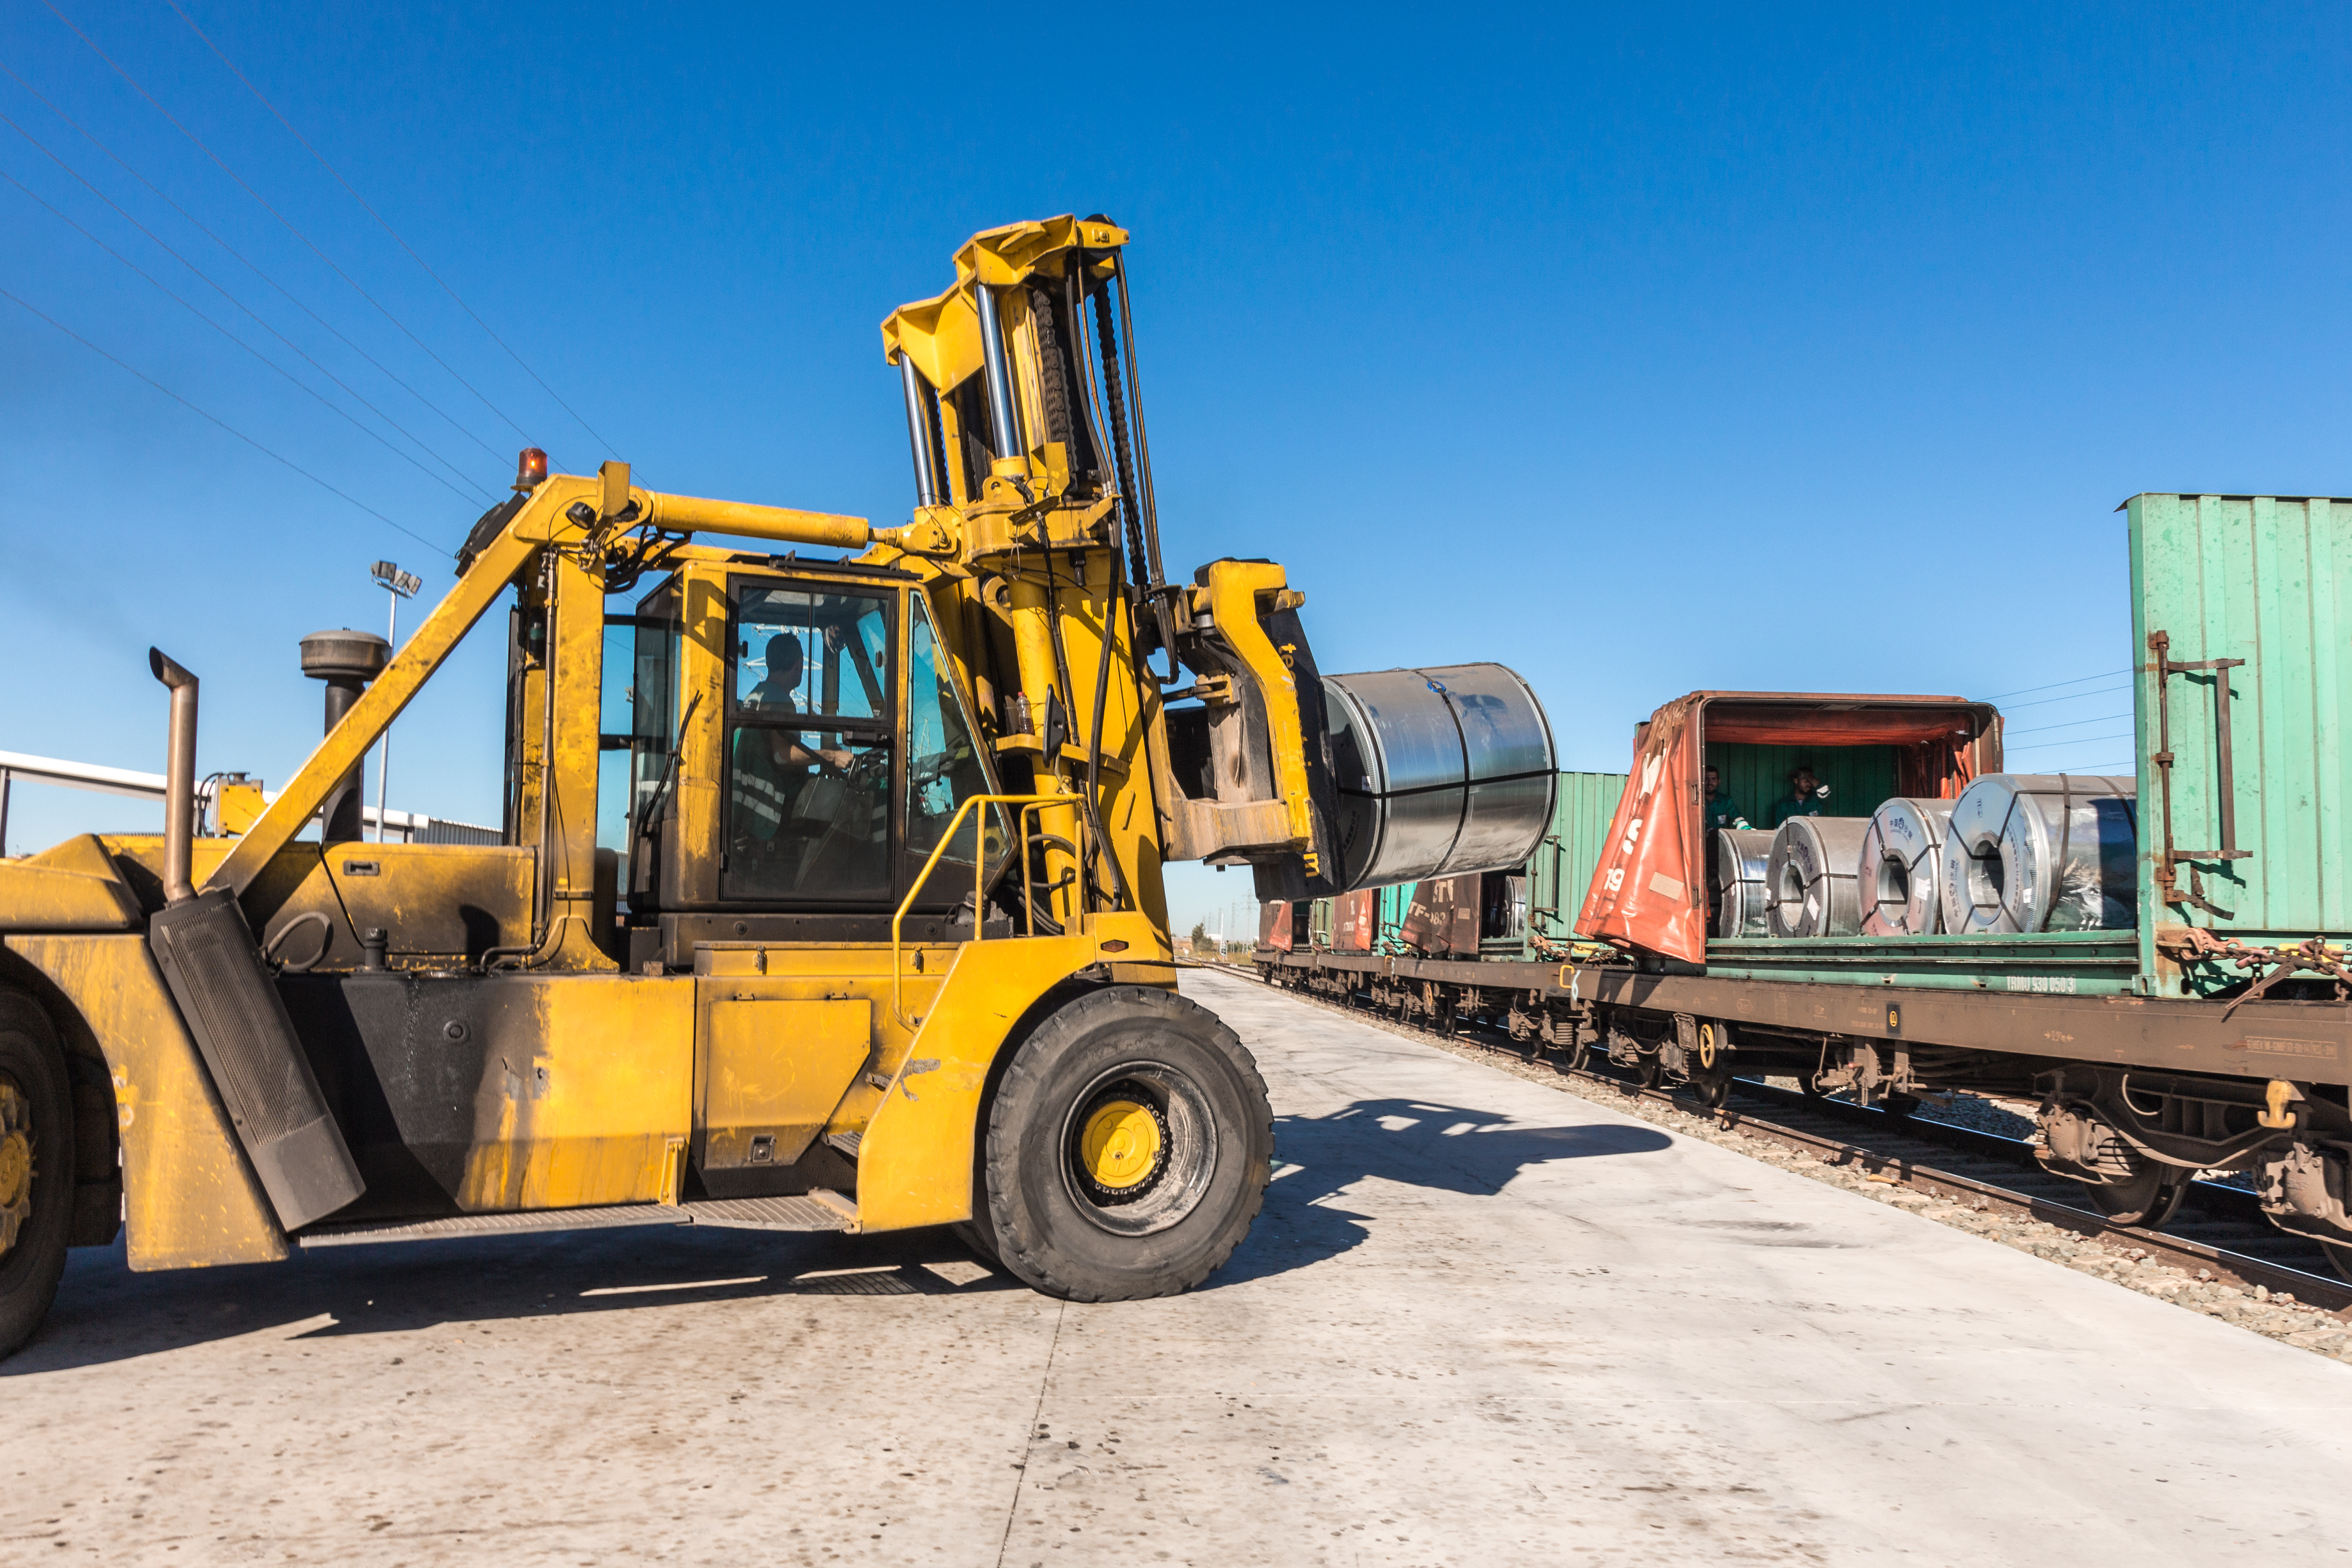 THE ARANDA RAIL BRANCH IS CONSOLIDATED AS A KEY PIECE FOR THE LOCAL INDUSTRY